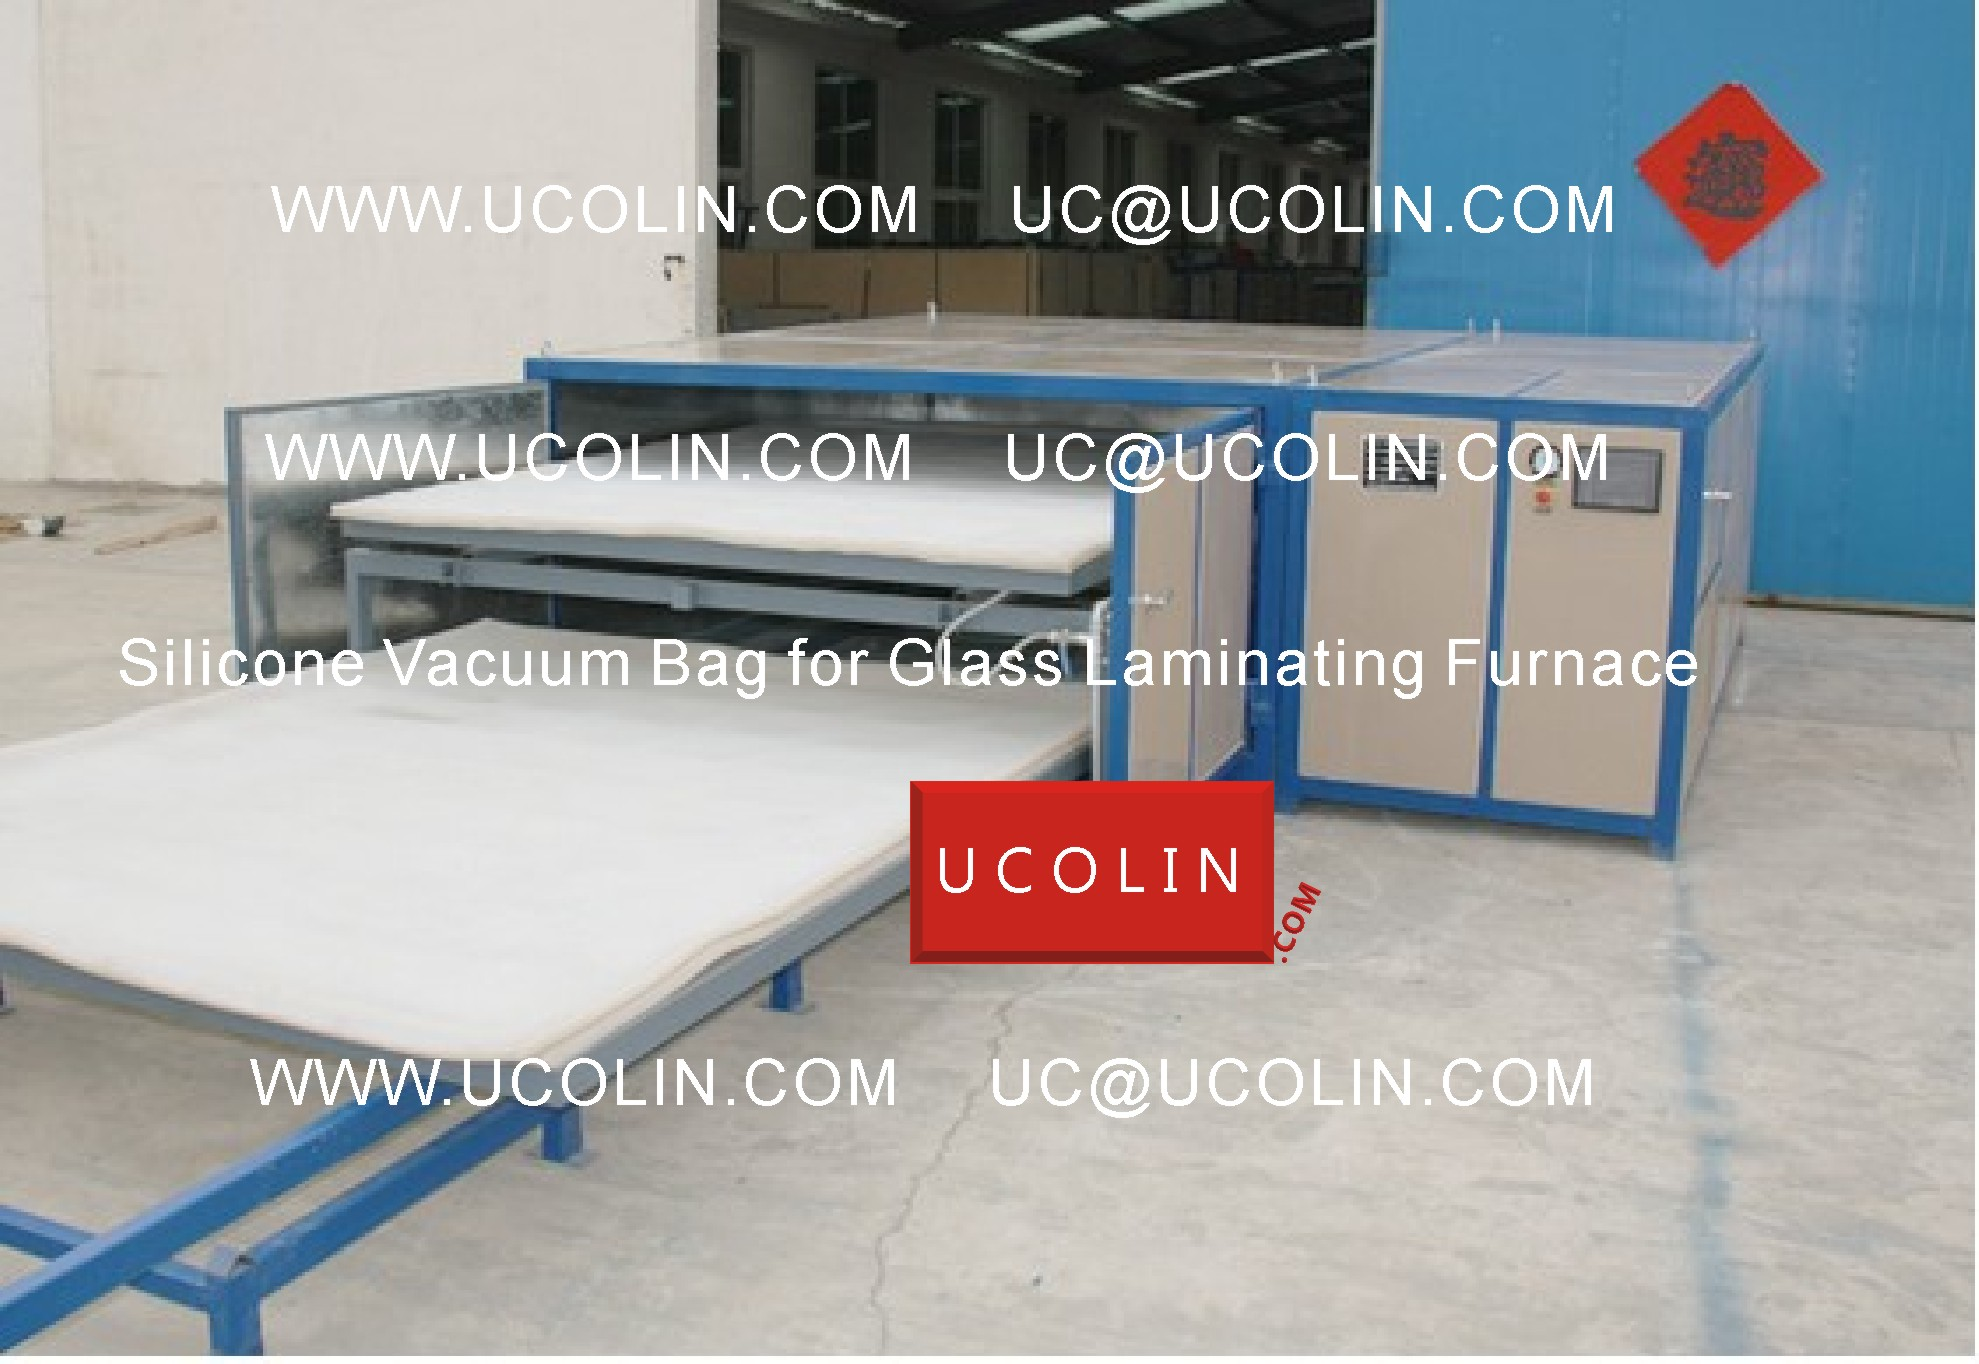 01 Application of Silicone Vacuum Bag for Glass Laminating Furnace